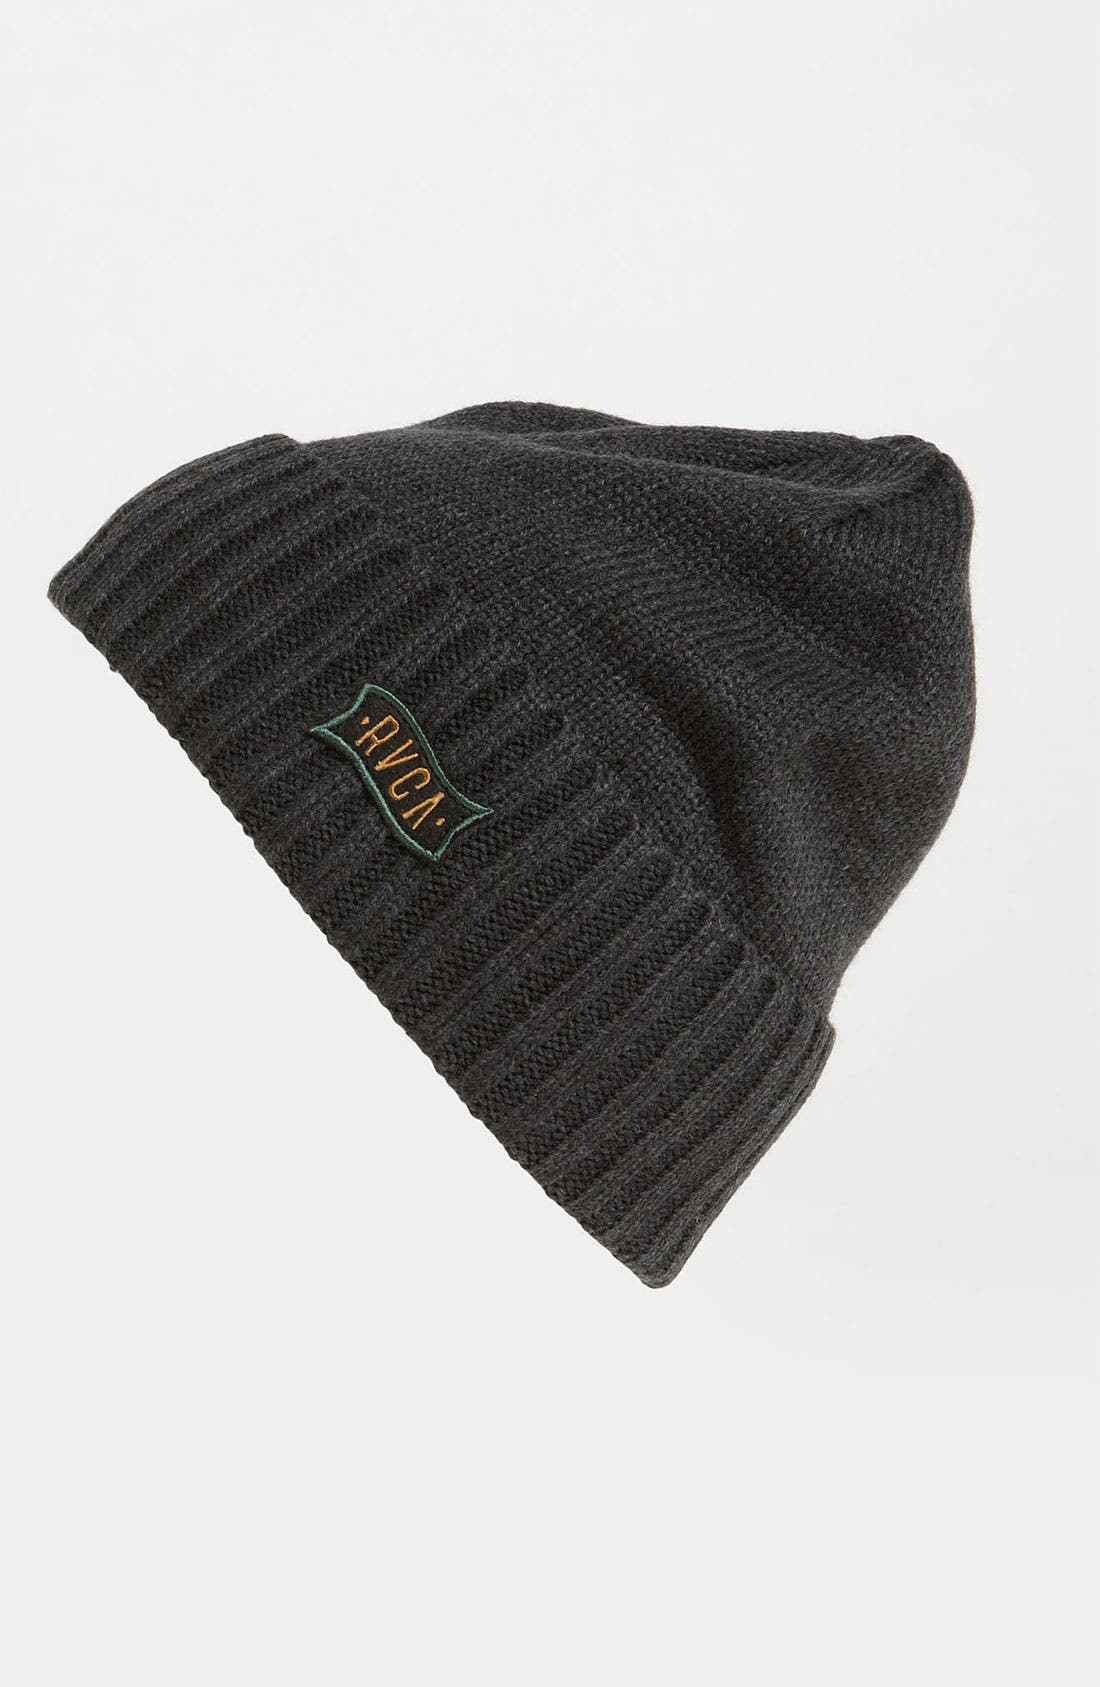 Main Image - RVCA 'Skullion' Knit Cap